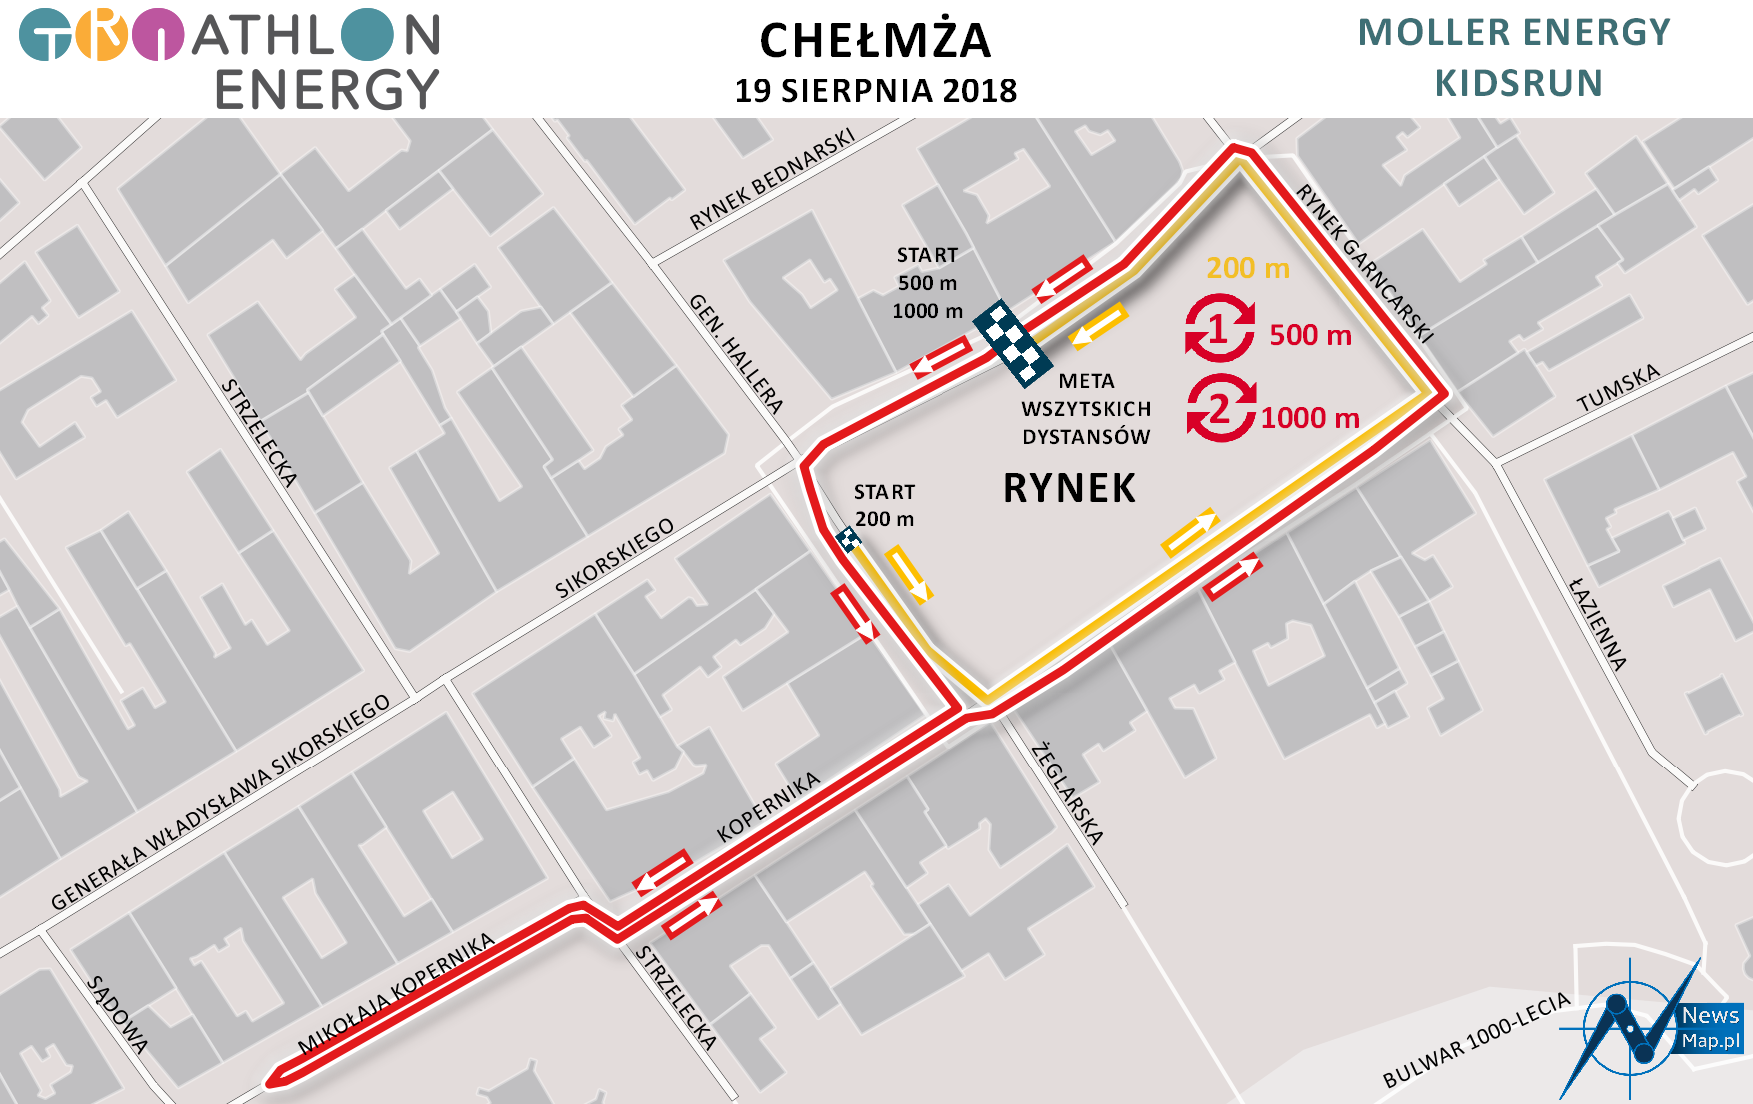 Mapa statyczna Chełmża Energy Triathlon 2018 - Moller Energy KidsRun (on-line)